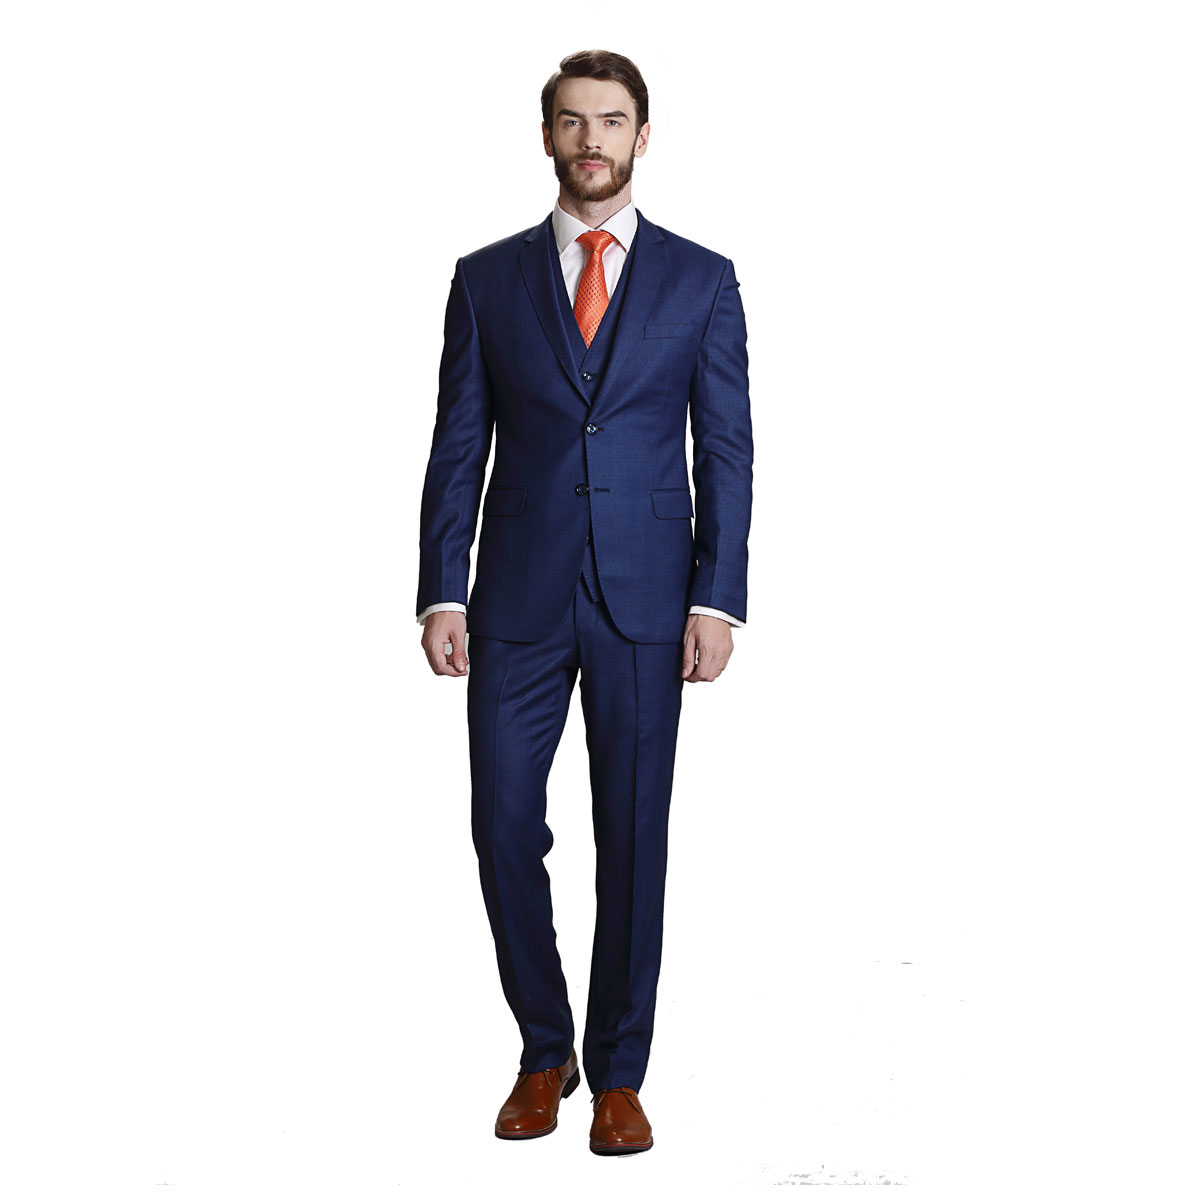 The True Blue Suit - Best Bespoke Suits. Premium Custom Tailored ...